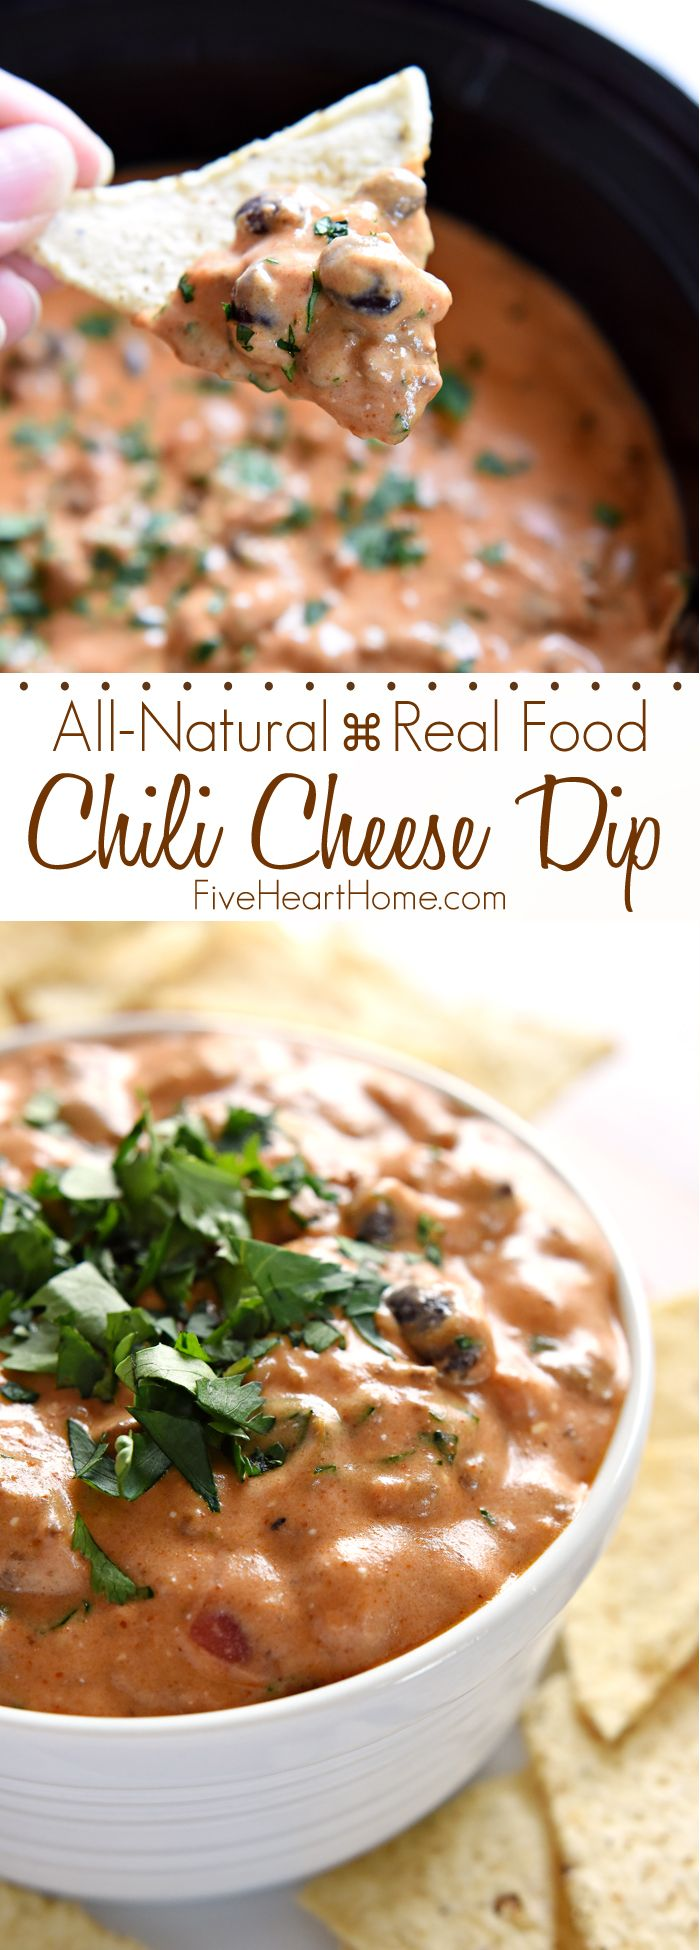 Chili Cheese Dip (with All-Natural, Real Food Ingredients) - This decadent, creamy, real food version of Chili's Skillet Queso features homemade chili, cheddar cheese sauce, and no processed ingredients!